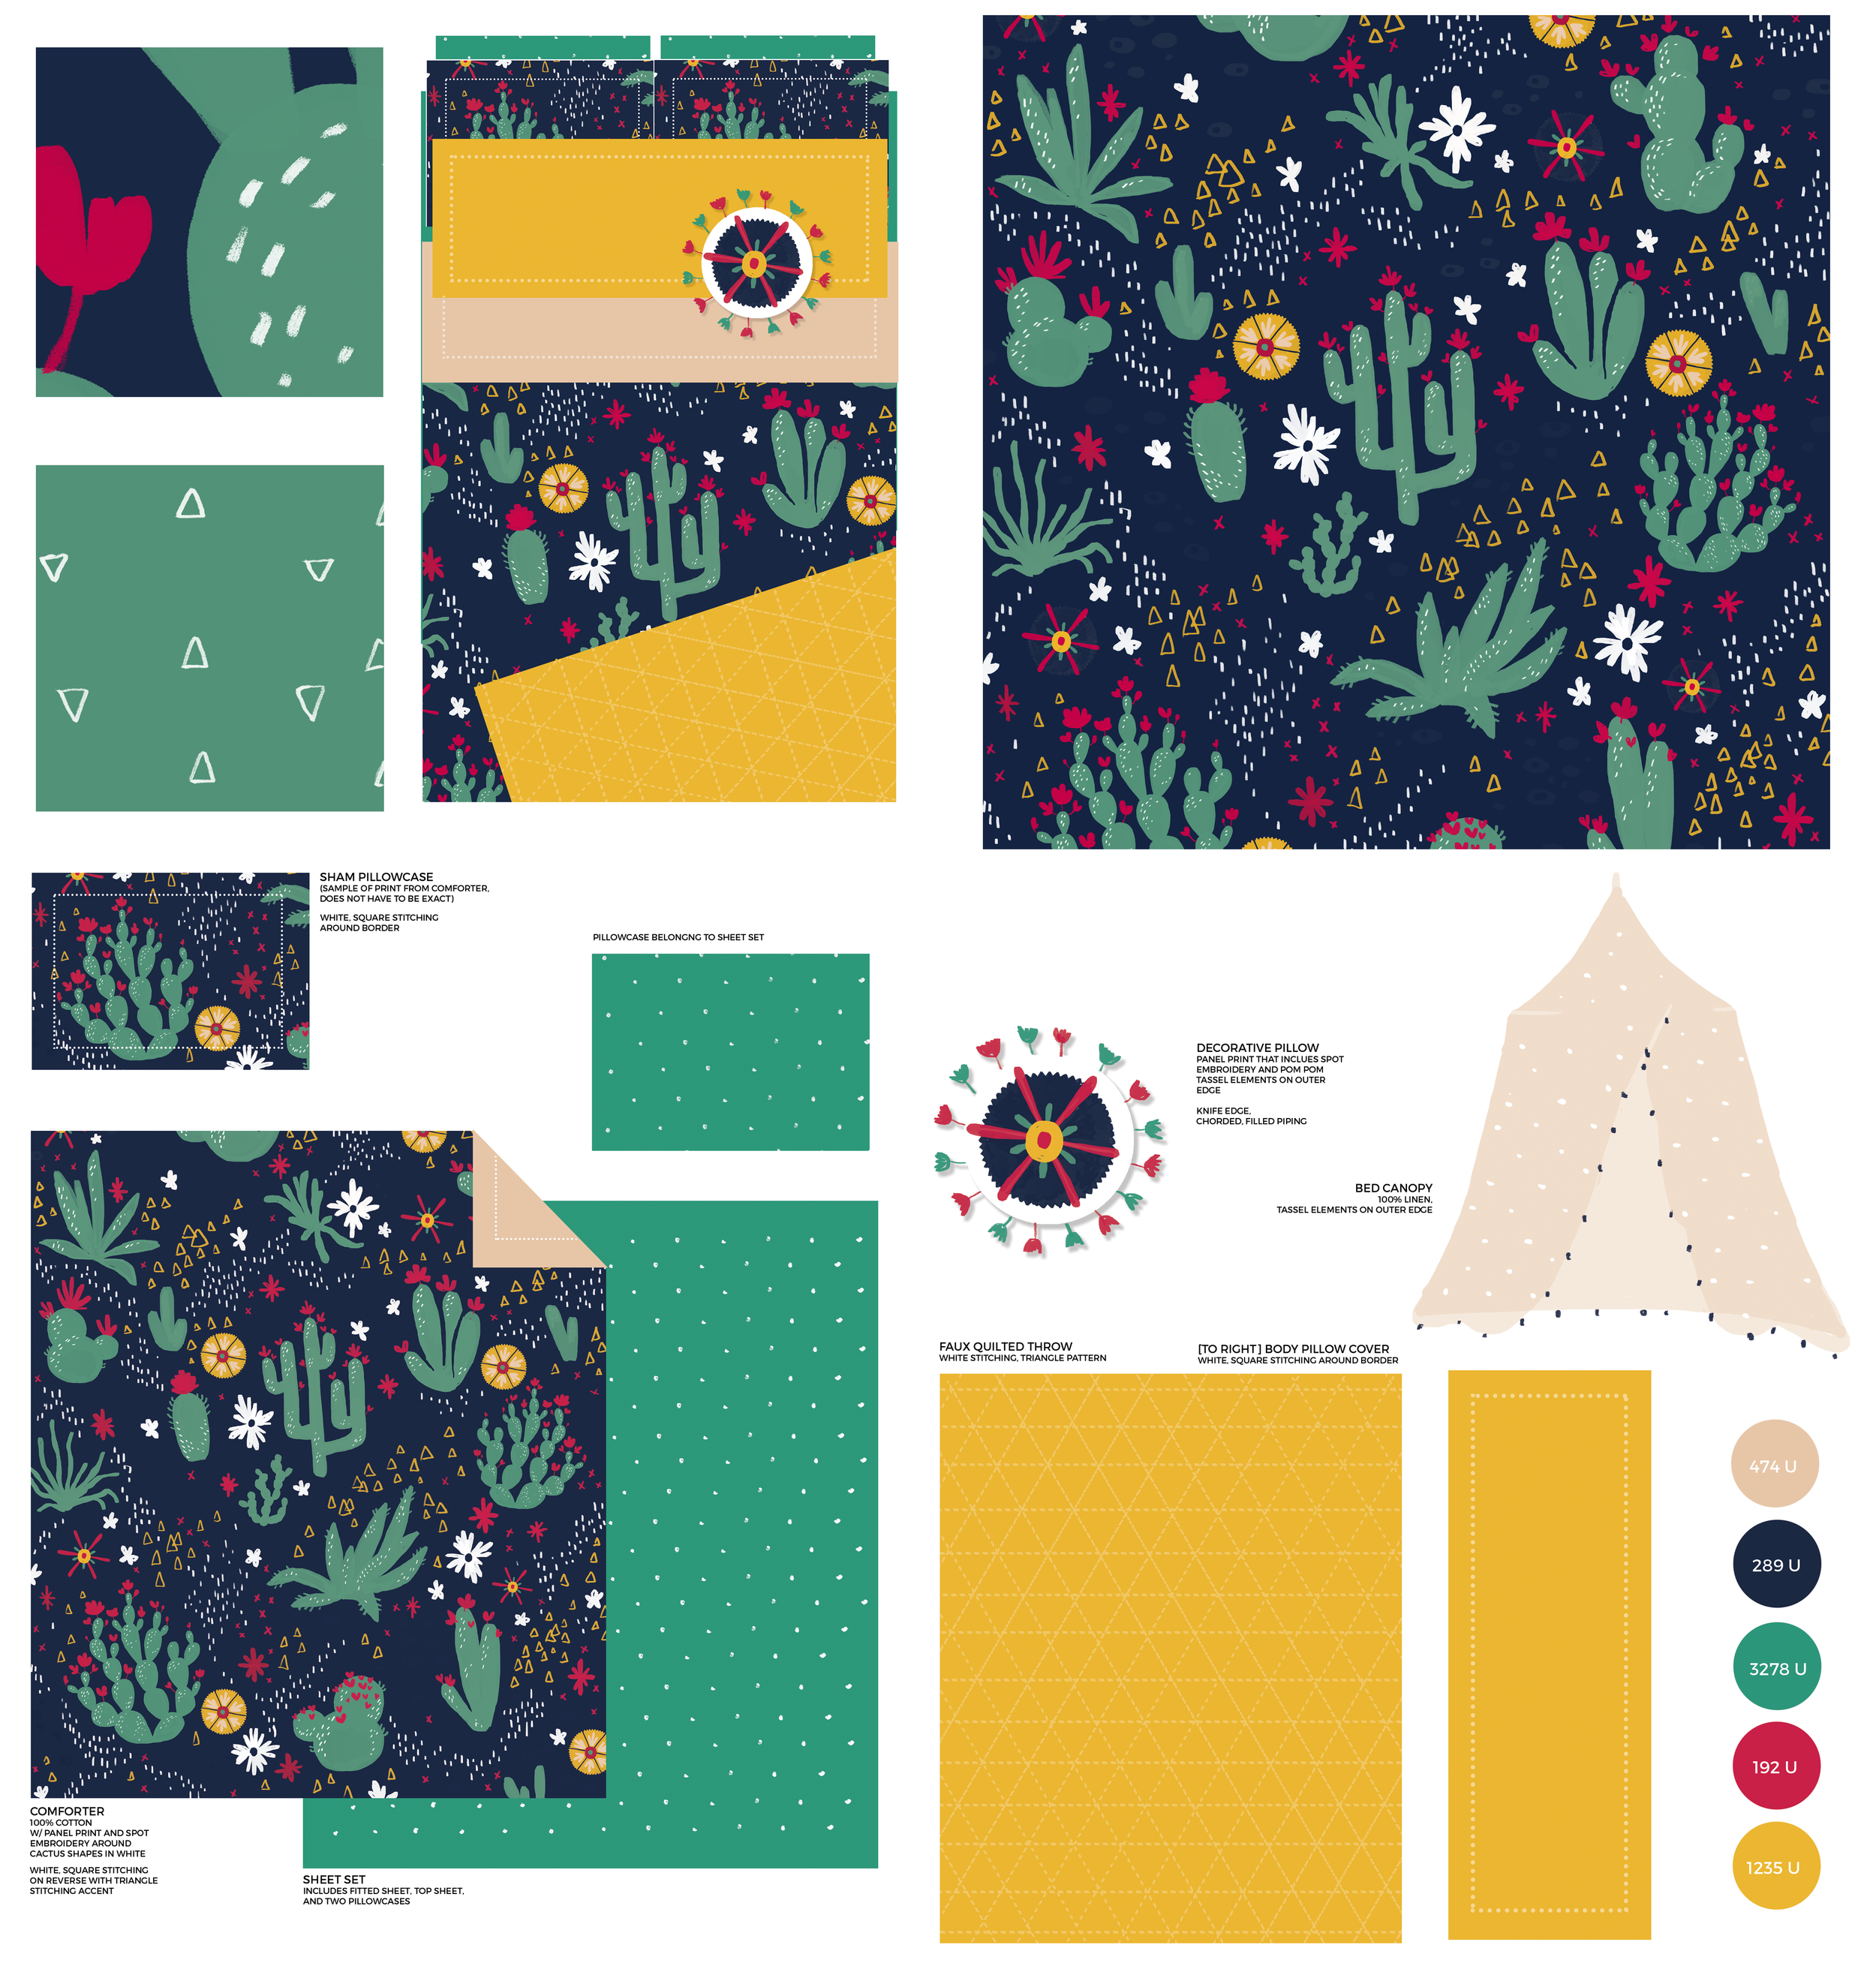 CACTUS BLOSSOMS BEDDING SET   Mock bedding design and repeat pattern inspired by South America